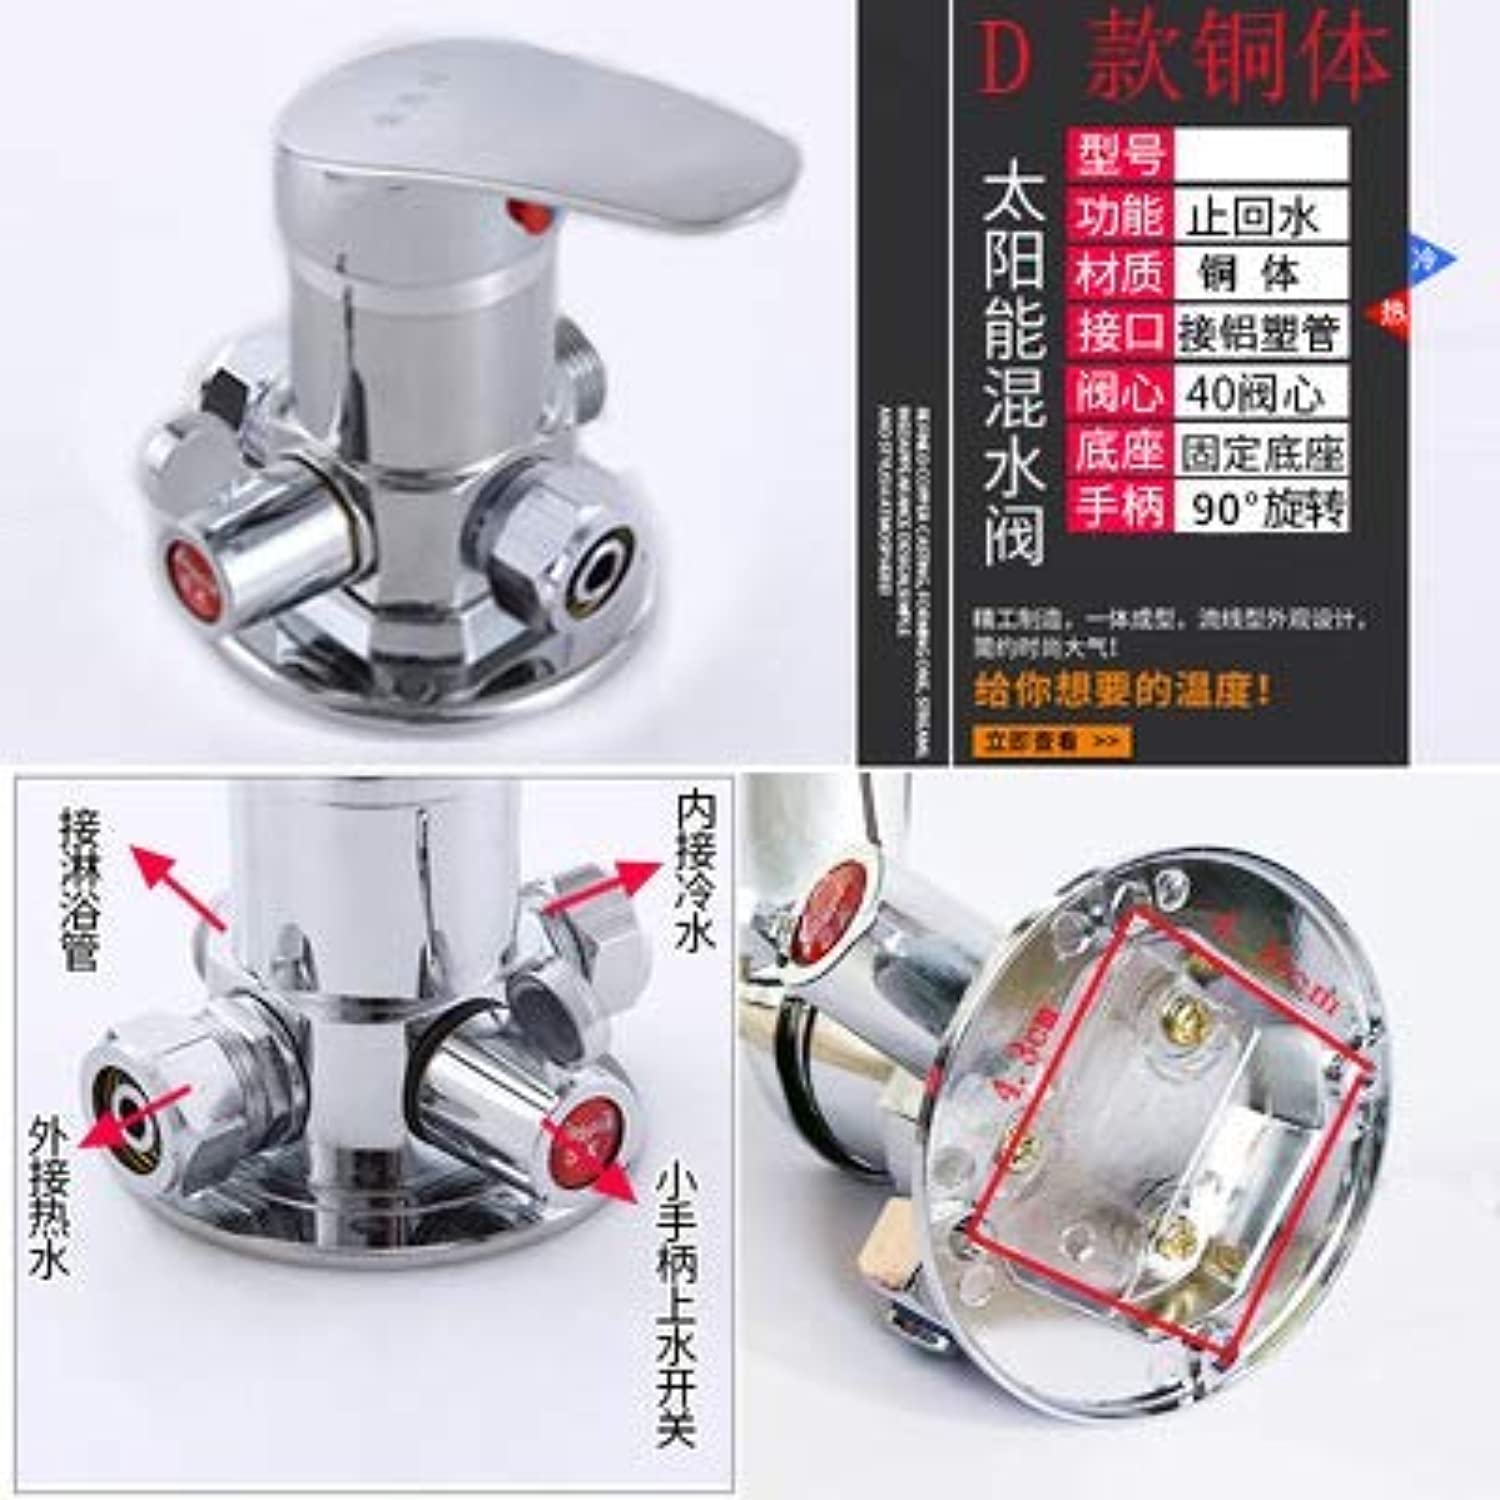 XINXI HOME Shower faucet_Water separator shower faucet wall-mounted faucet solar mixing valve mounted, H alloy thickened large chassis (color   W)